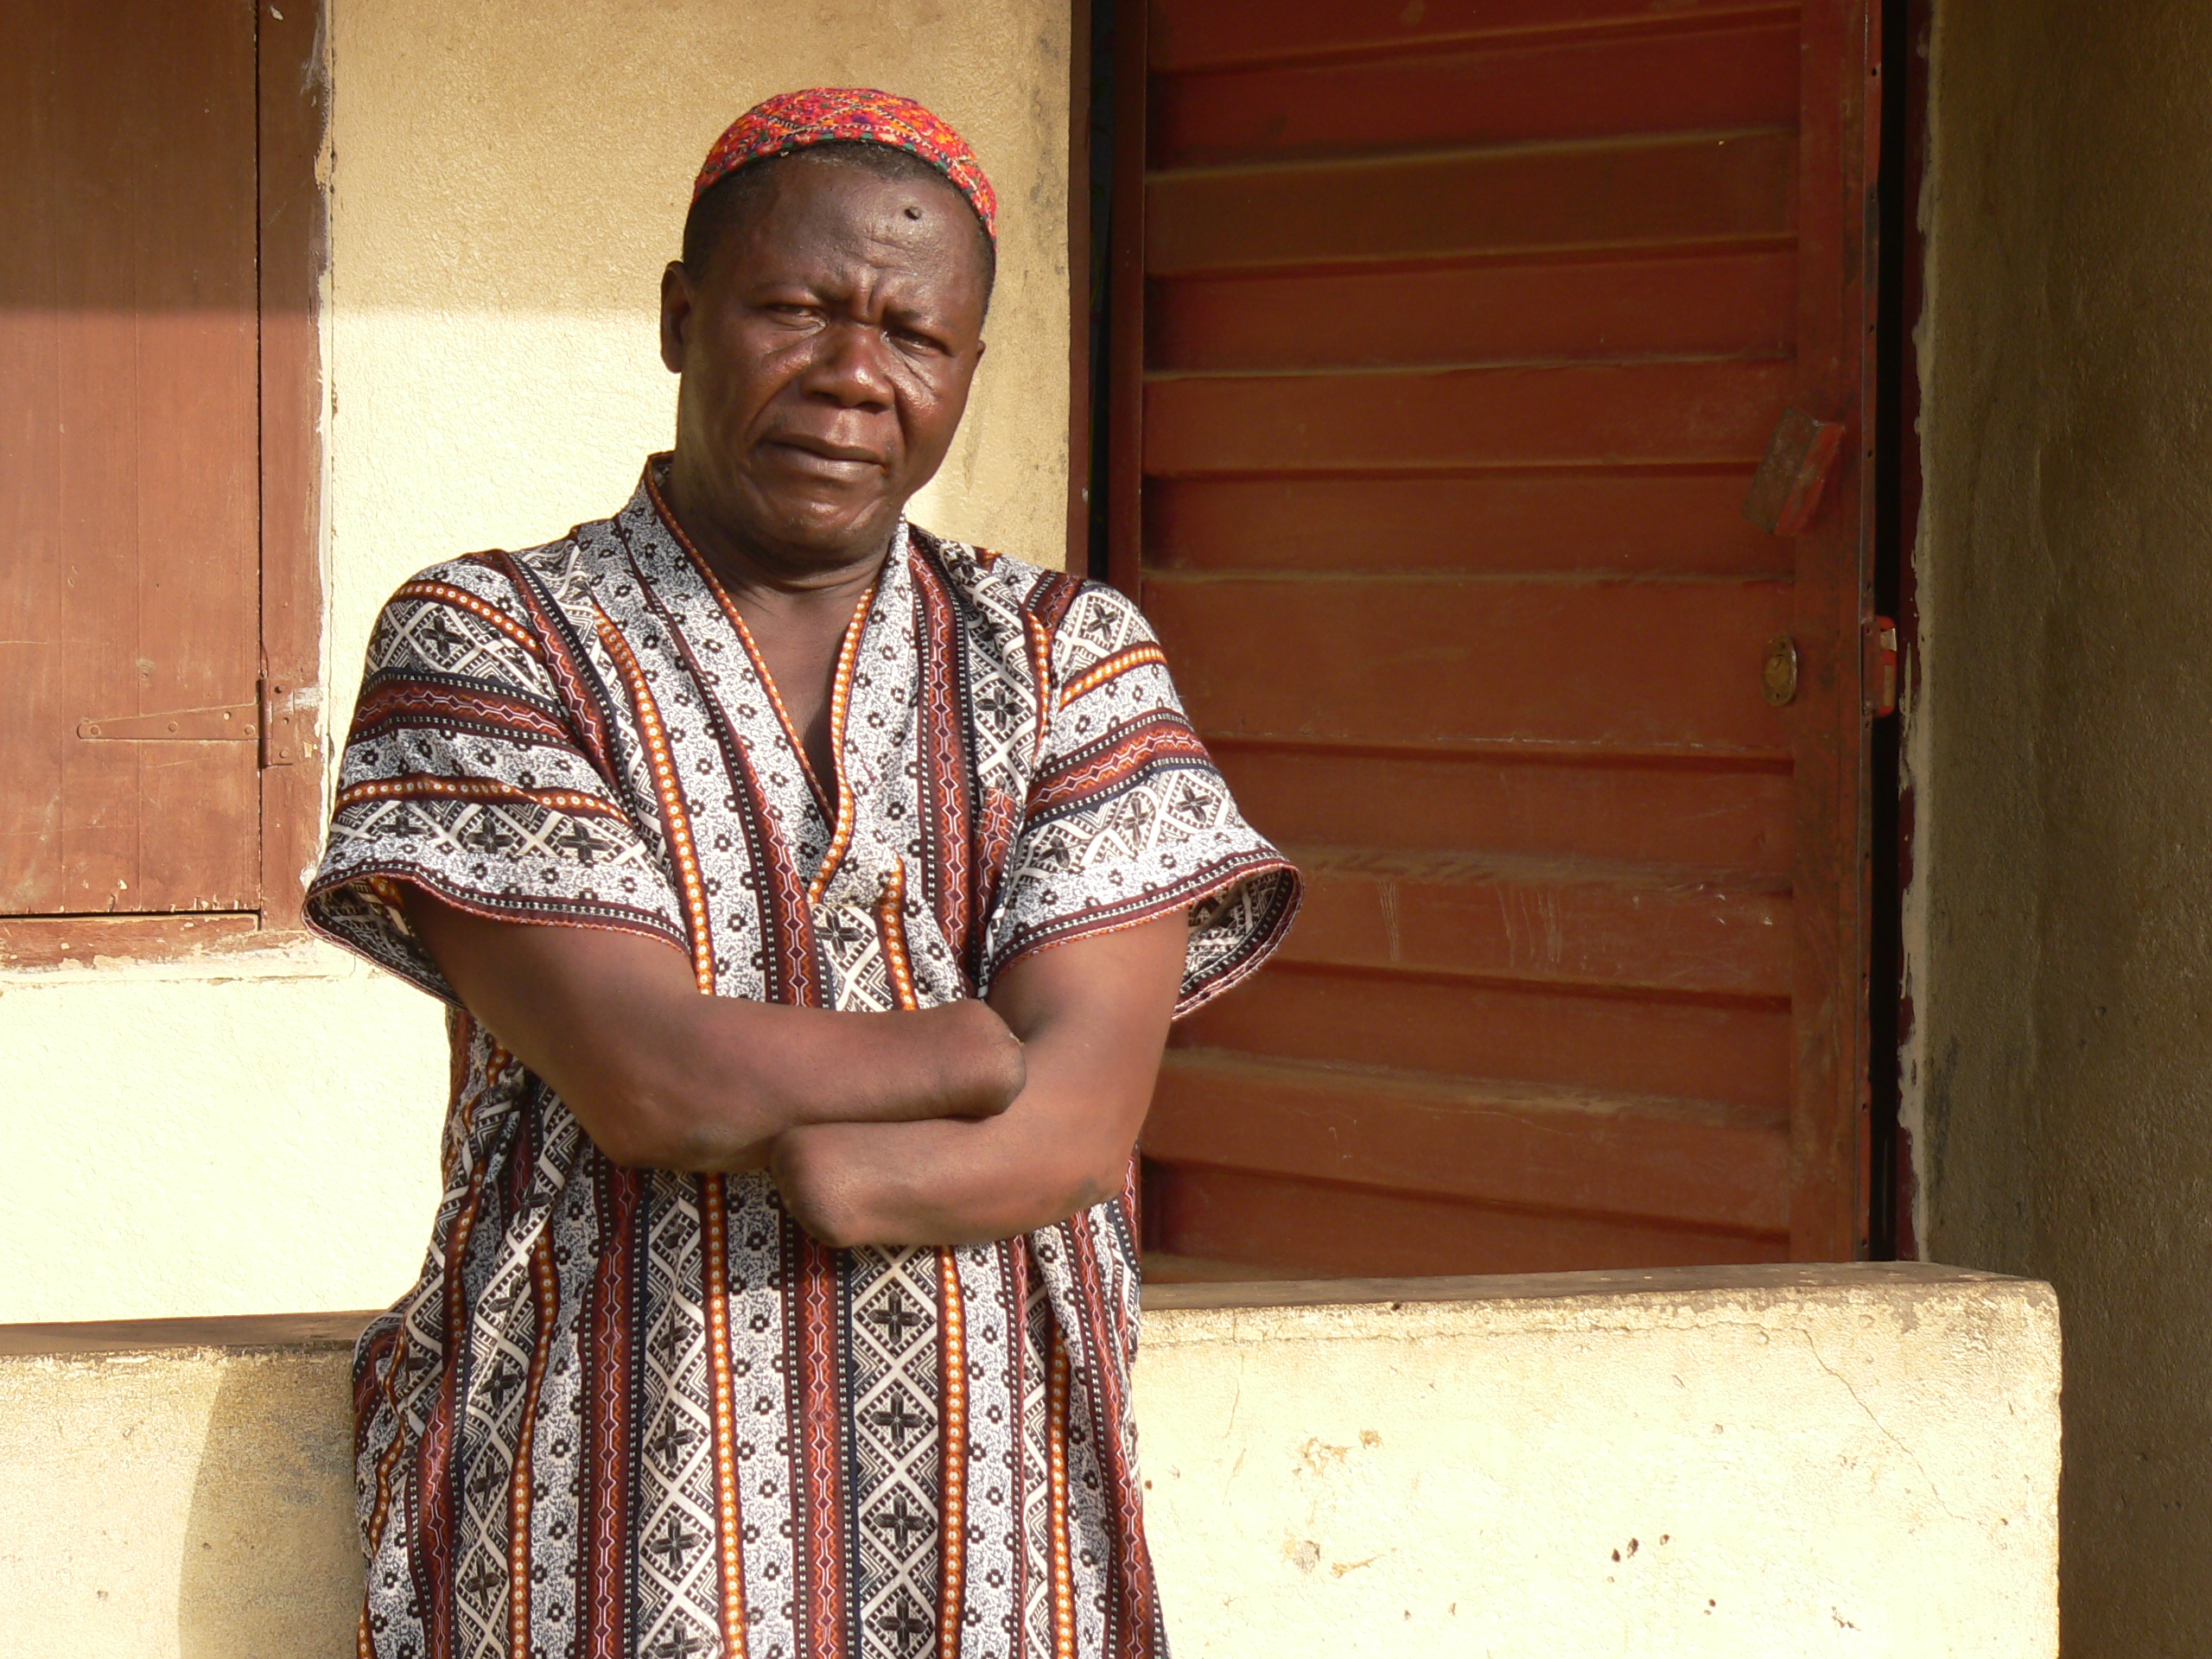 Lamin Jusu Jaka, chair of Sierra Leone's Amputees and War Wounded Association, stands in front of his house in Freetown, Sierra Leone.